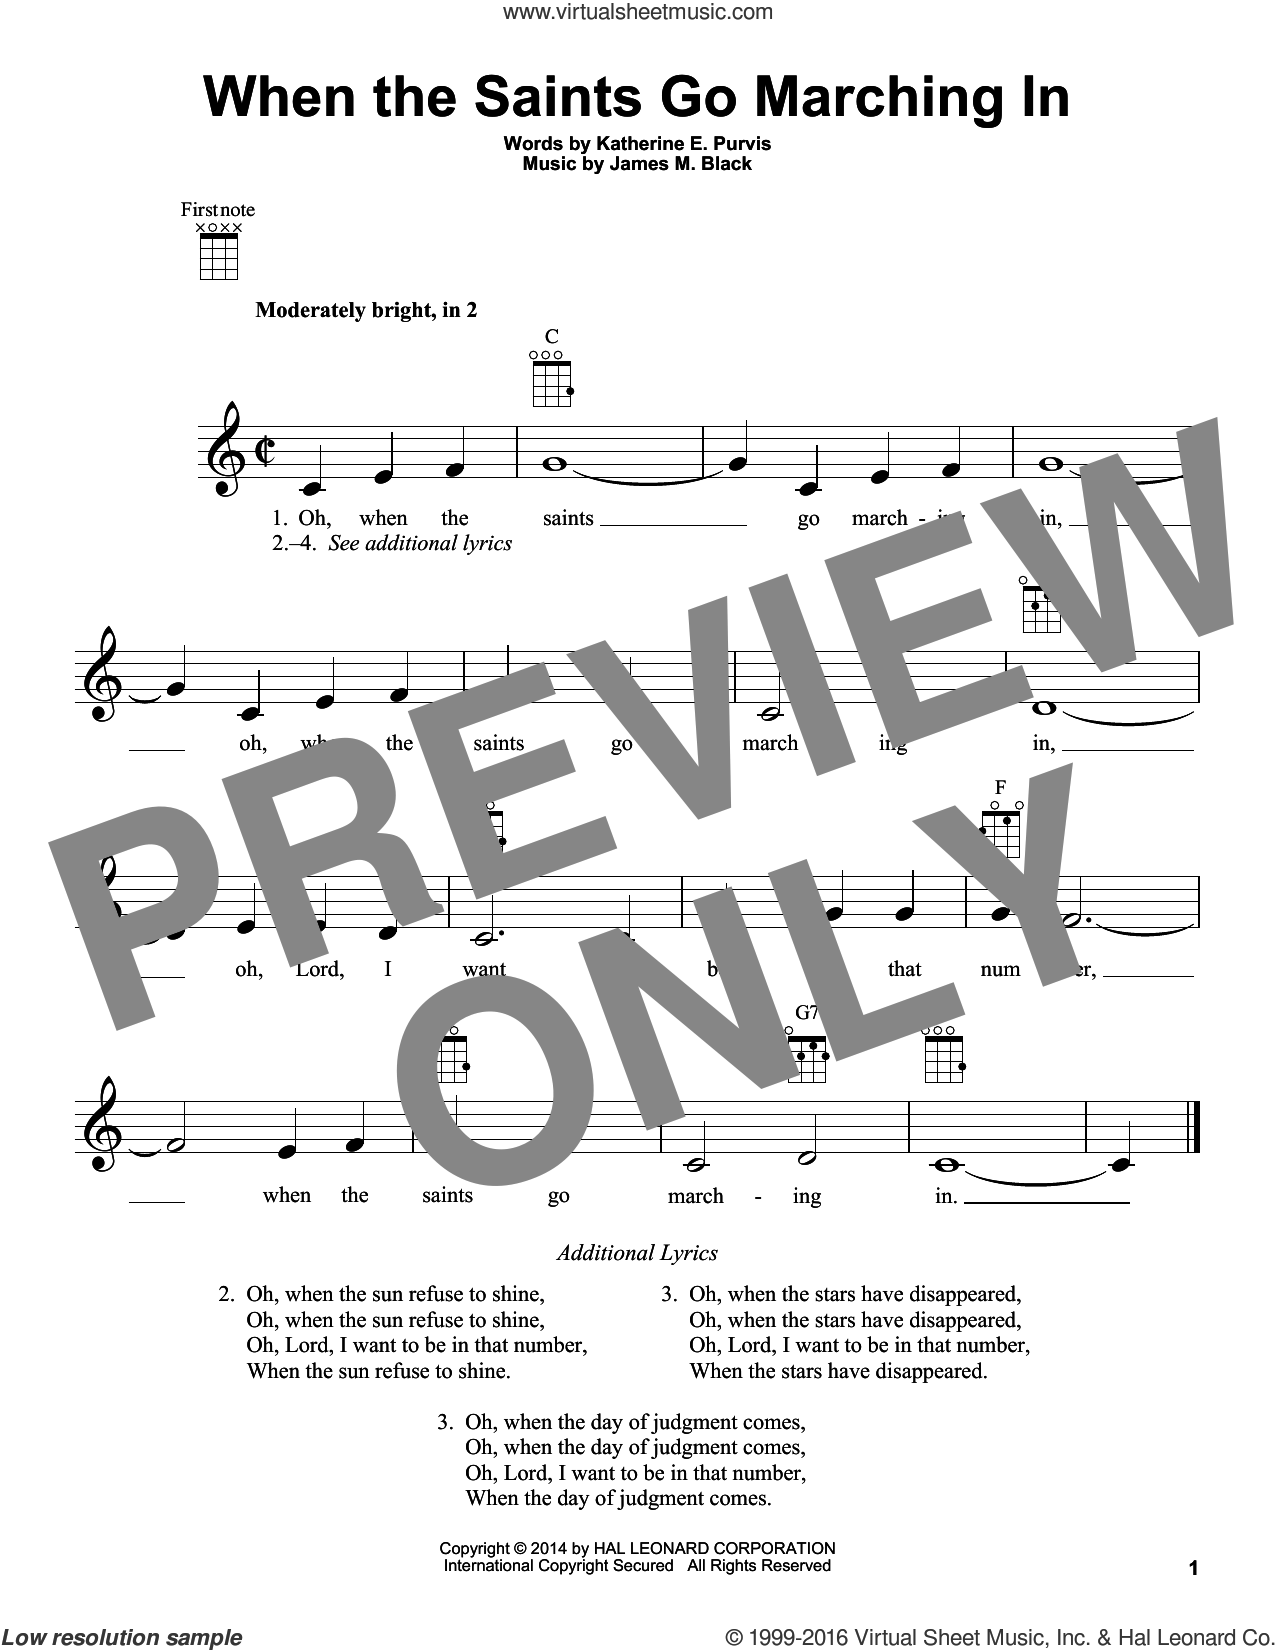 When The Saints Go Marching In sheet music for ukulele by Katherine E. Purvis and James M. Black. Score Image Preview.